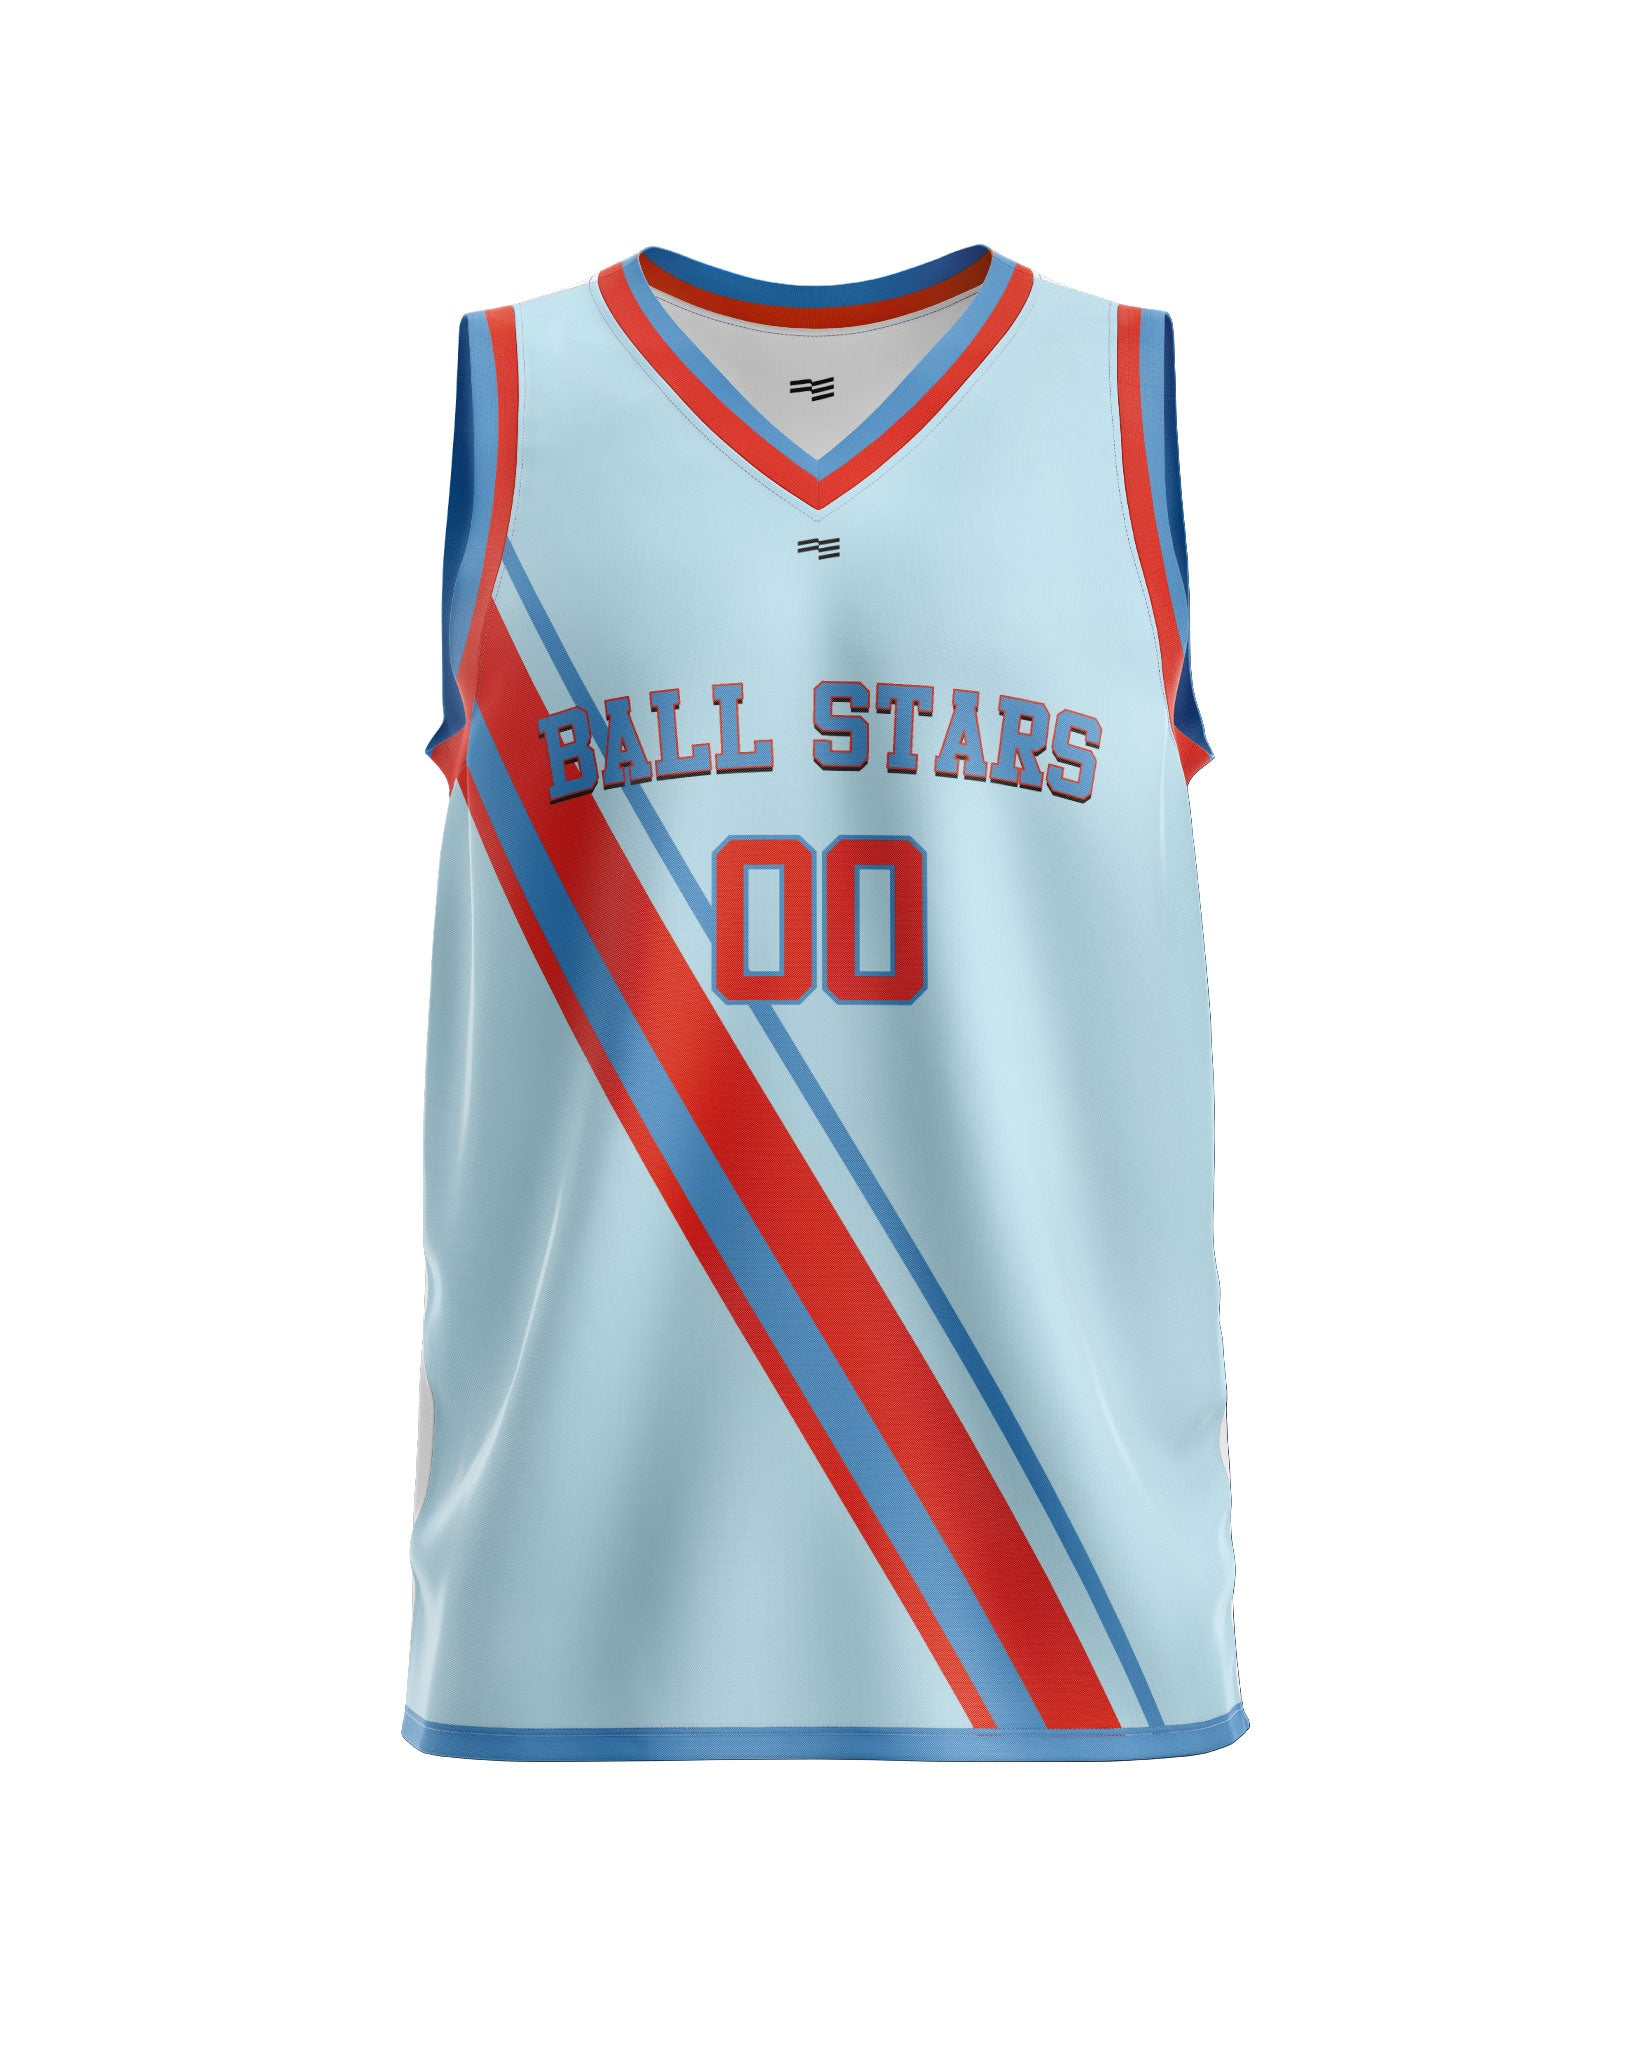 Ball Stars Reversible Jersey - Mens